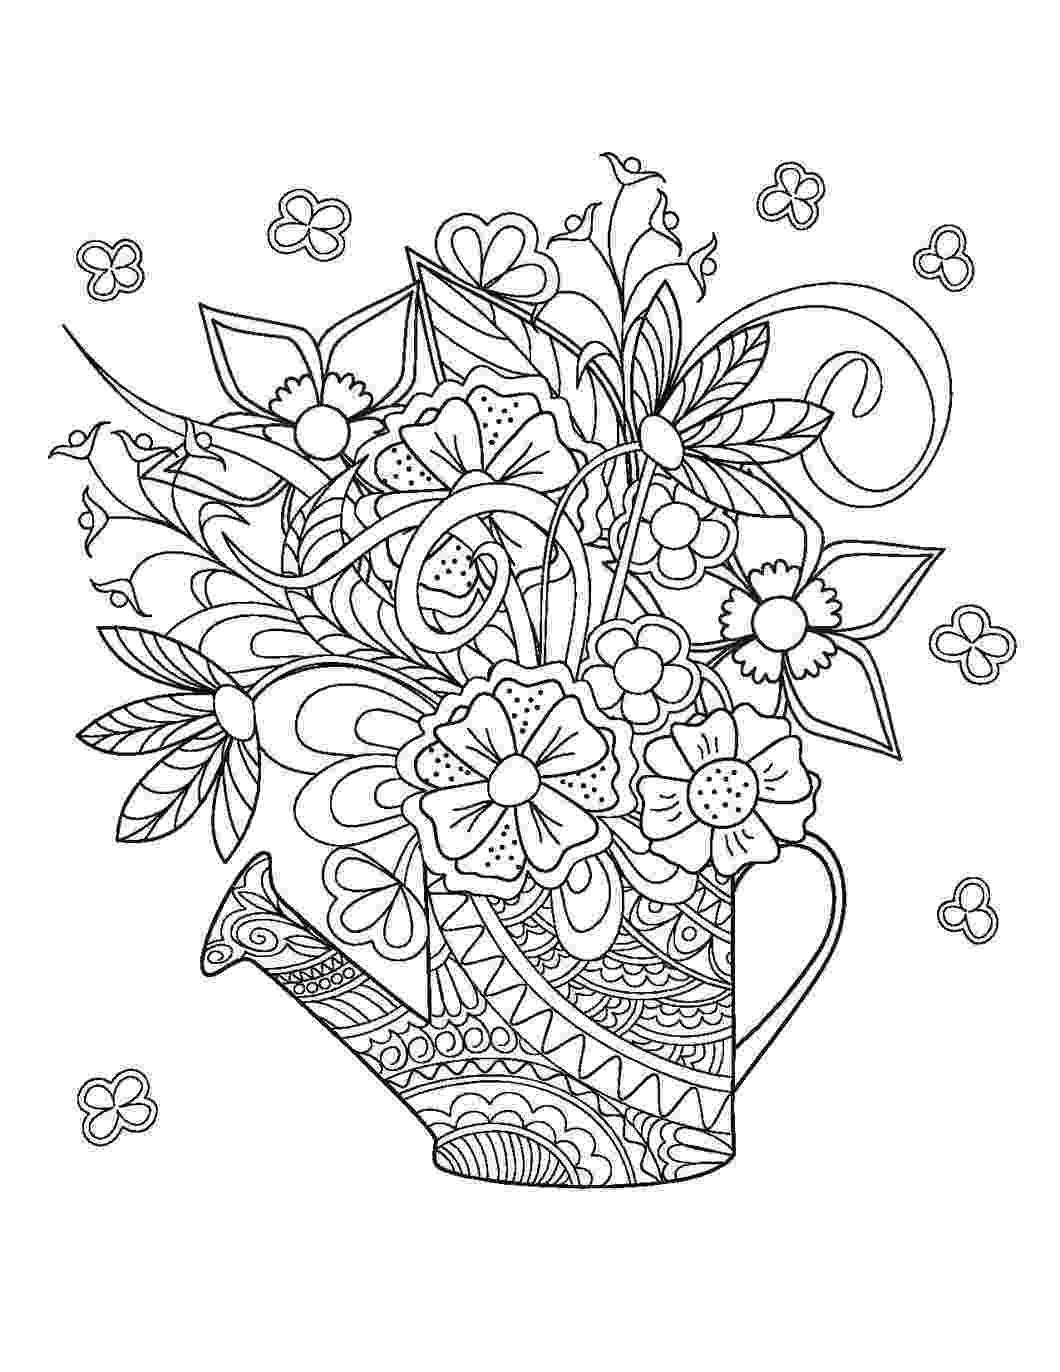 colouring for adults lize beekman south african artists mandala art and art online on pinterest for adults beekman colouring lize